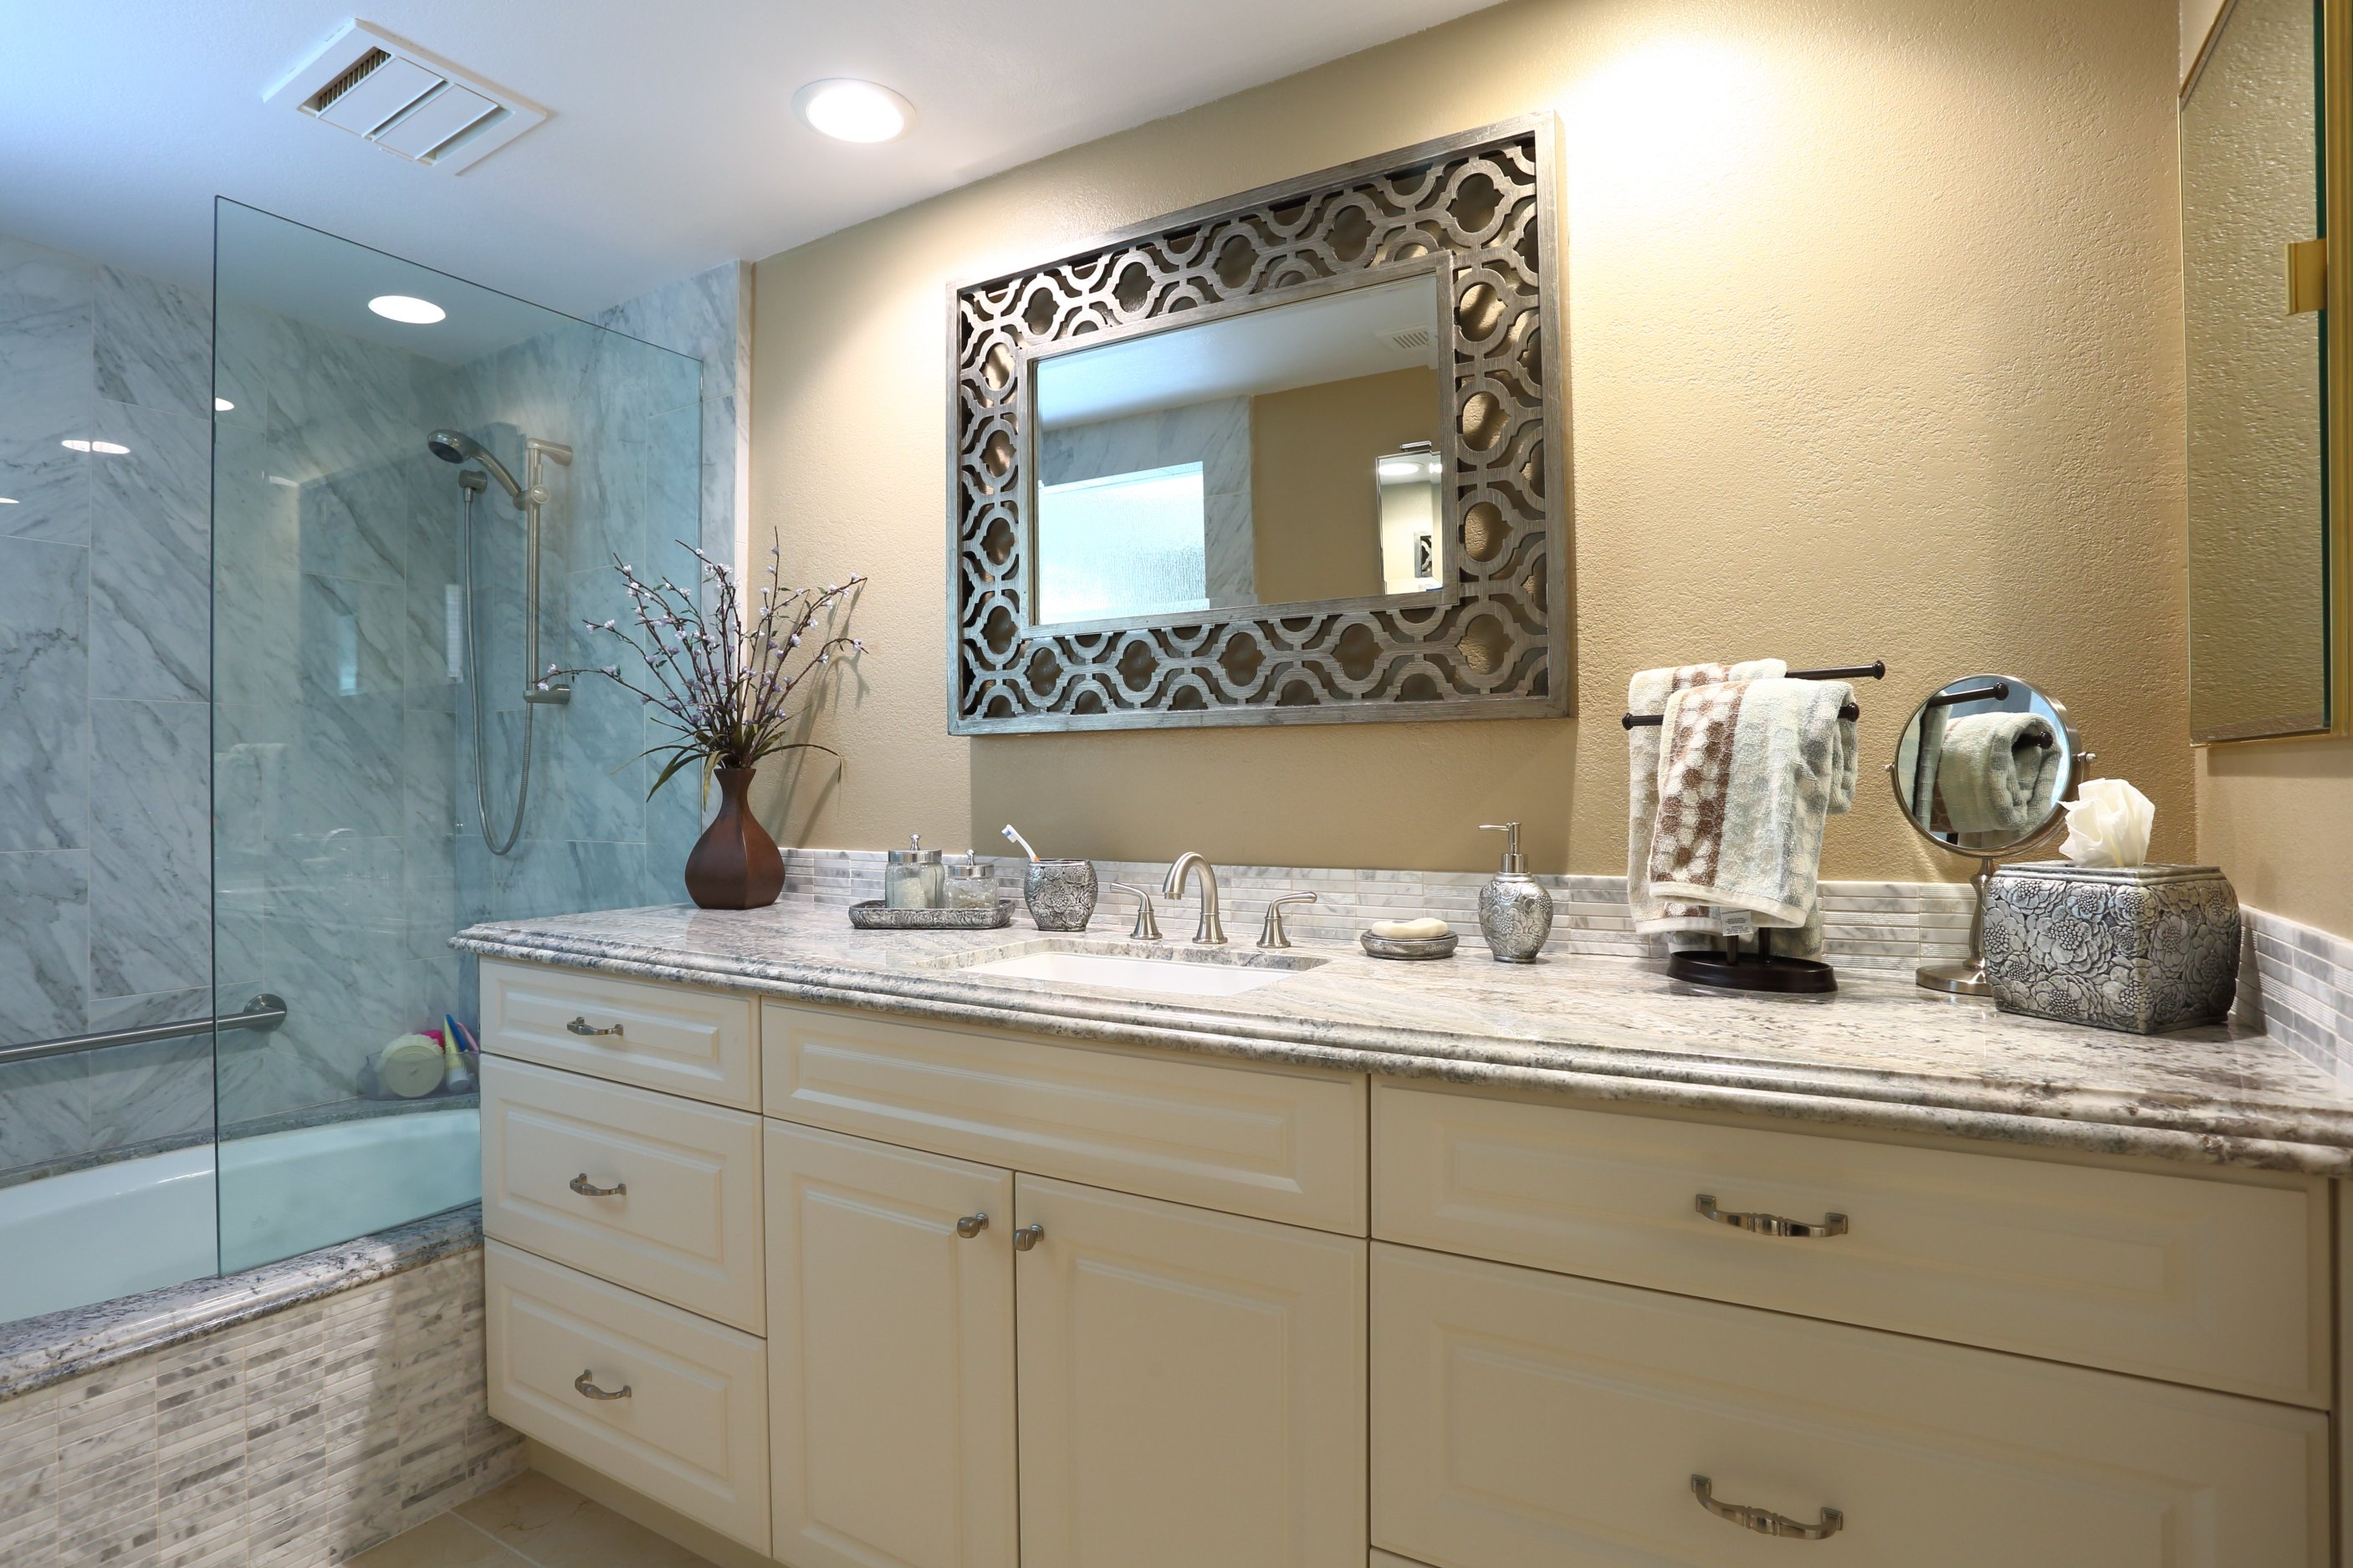 Kitchen Designer Palm Desert, CA | Bathroom Remodel & Kitchen Remodel